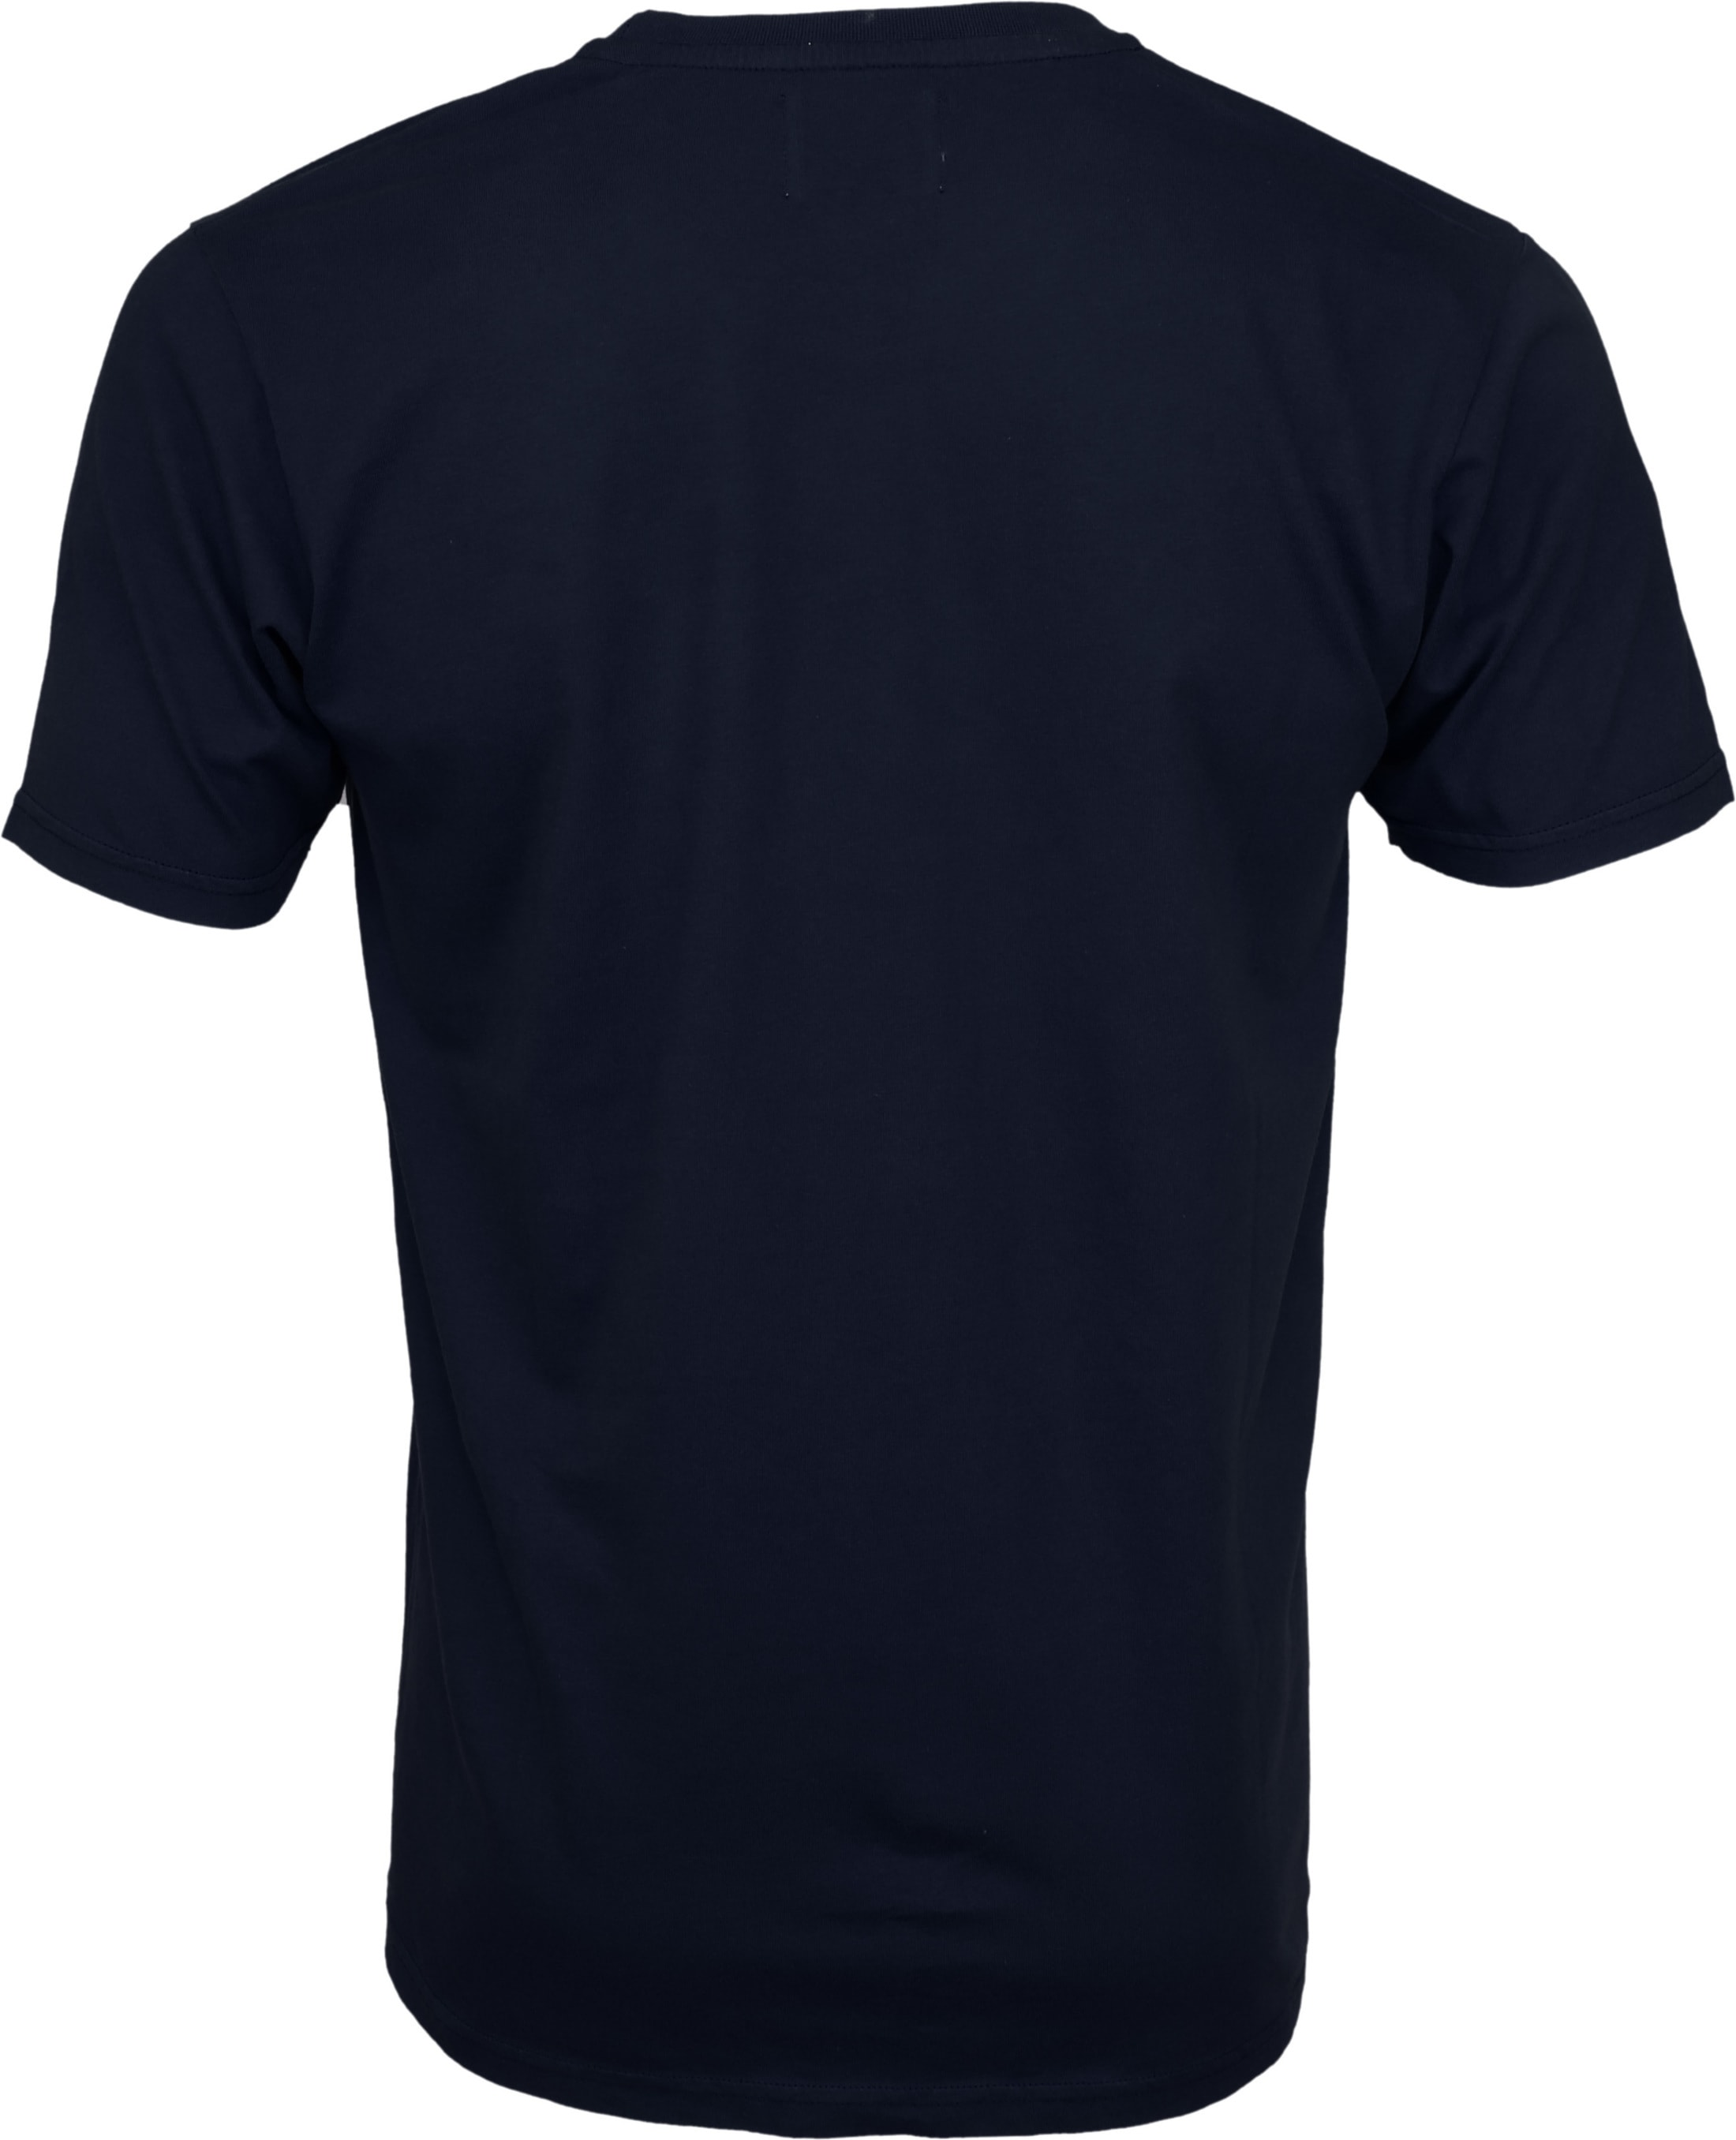 Colorful Standard T-shirt Navy Blue foto 2